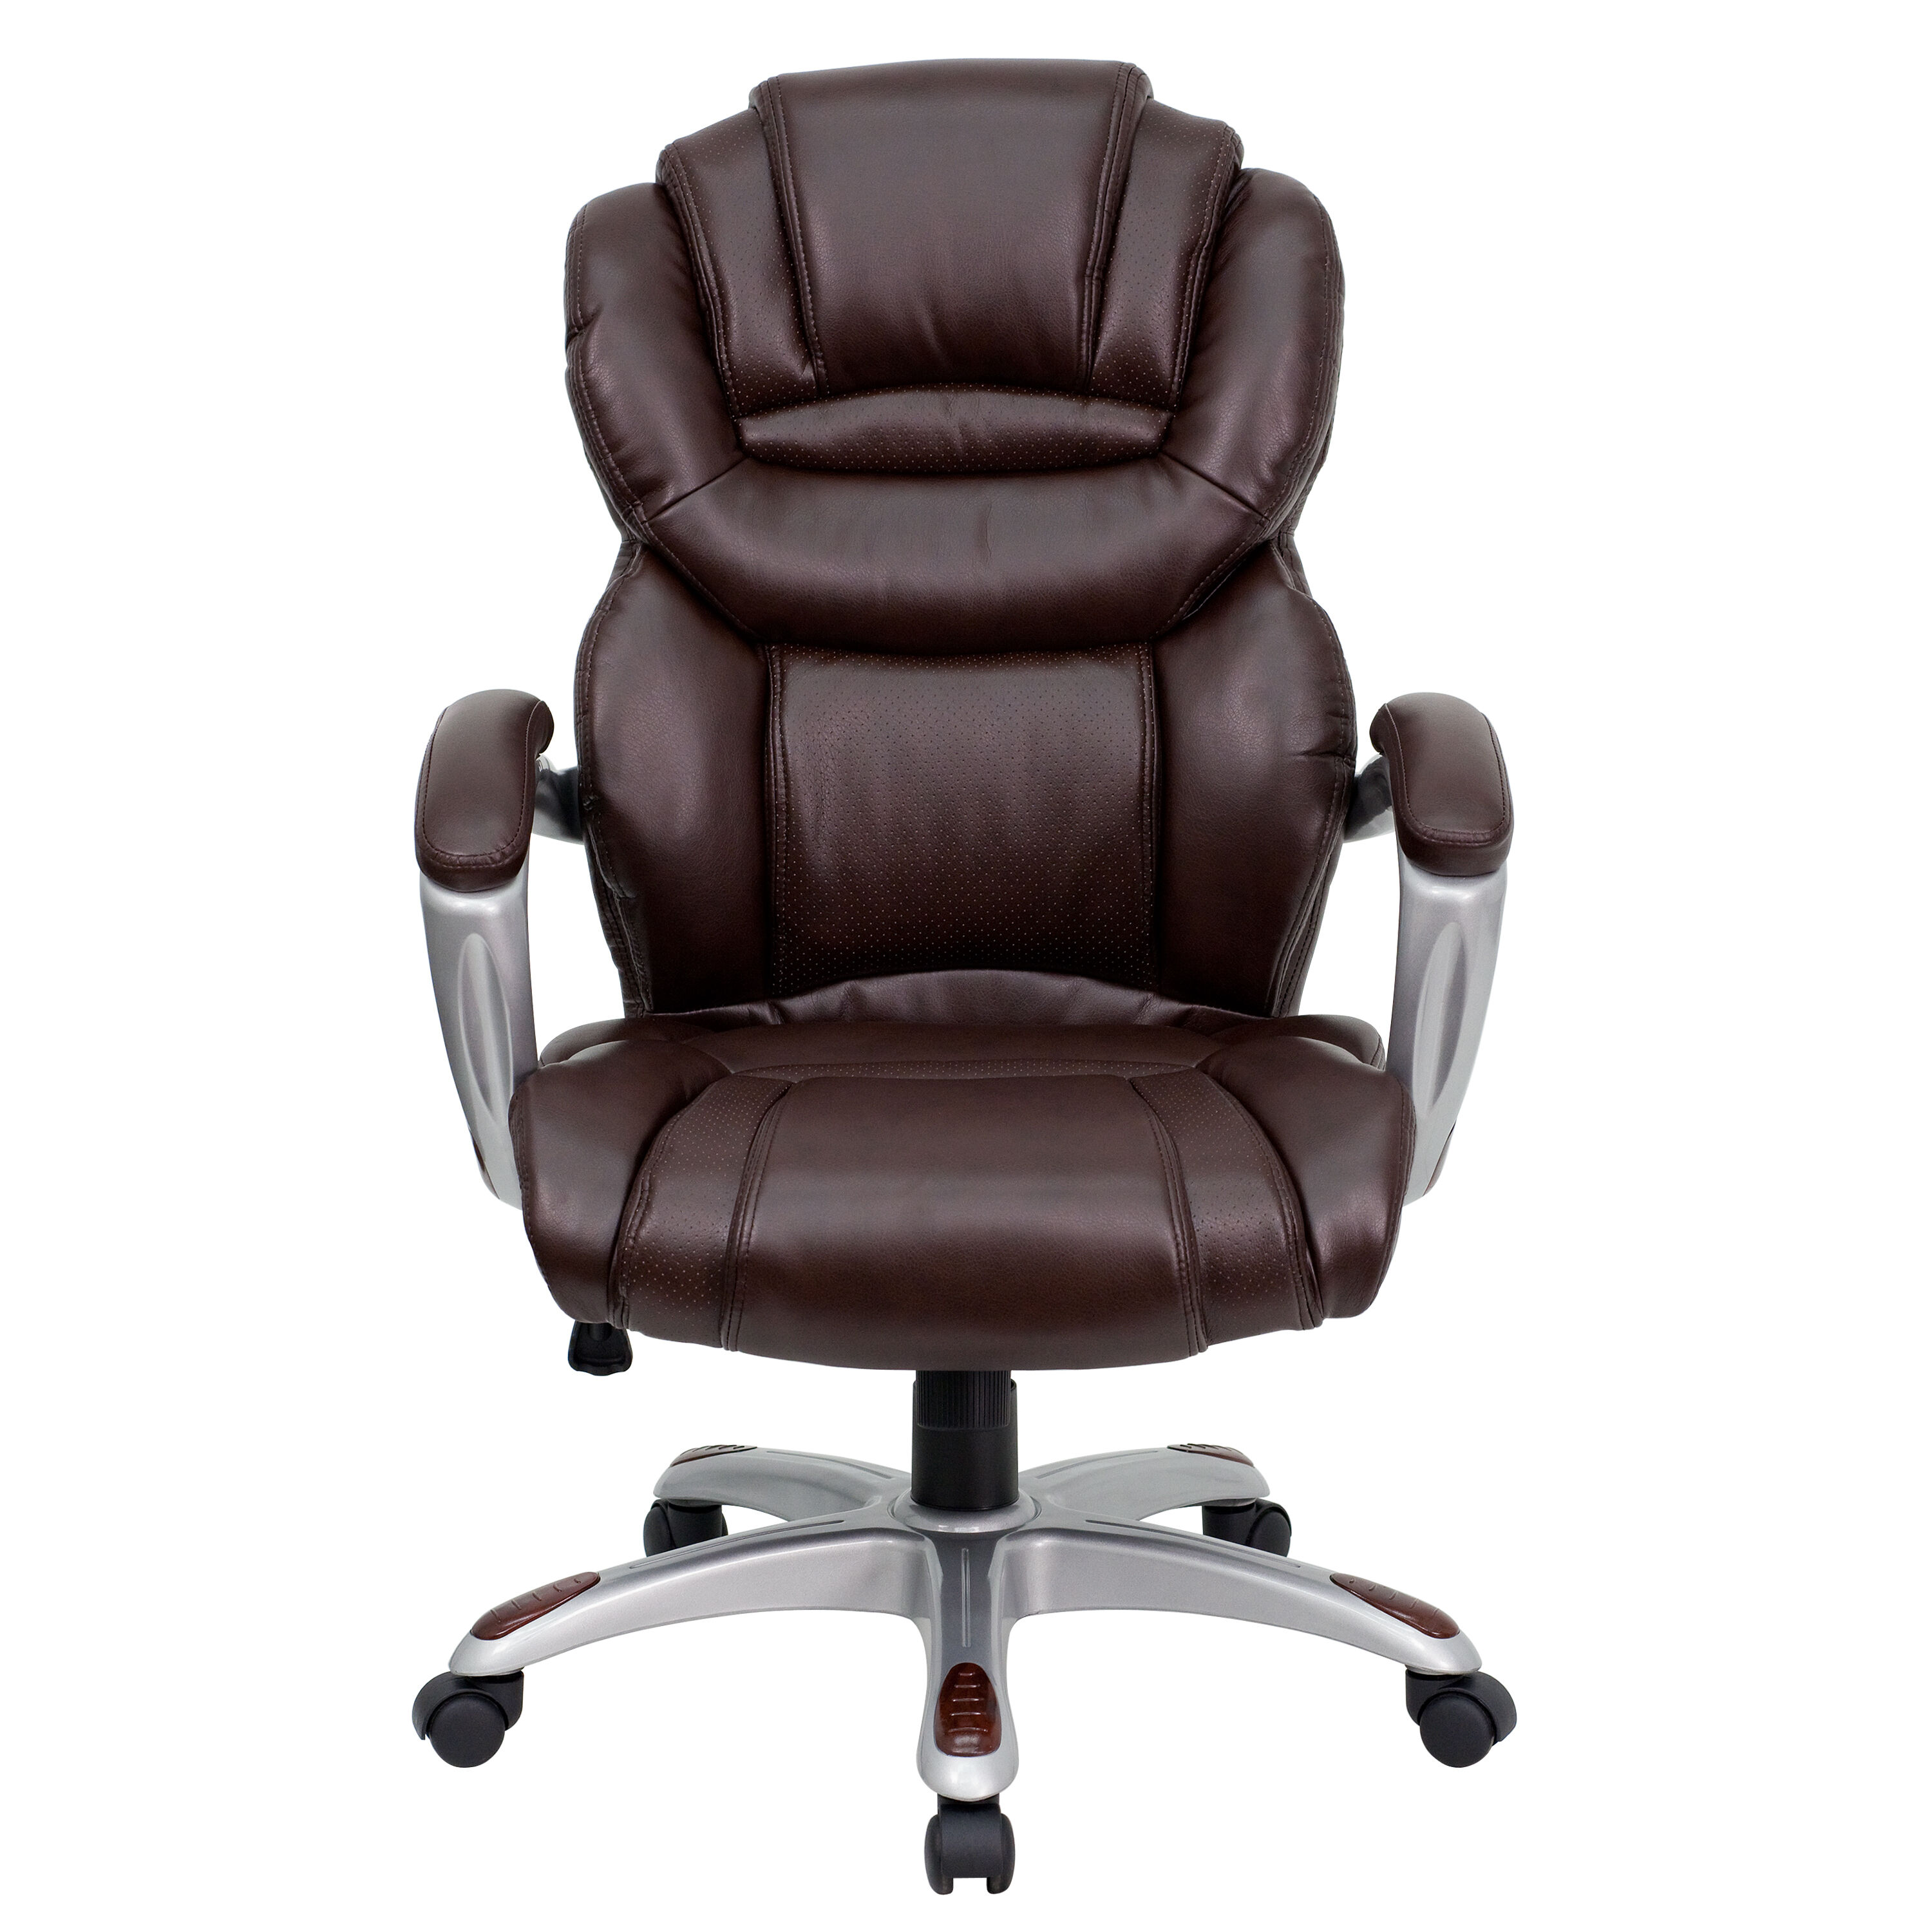 Our High Back Brown Leather Executive Swivel Chair With Arms Is On Sale Now.